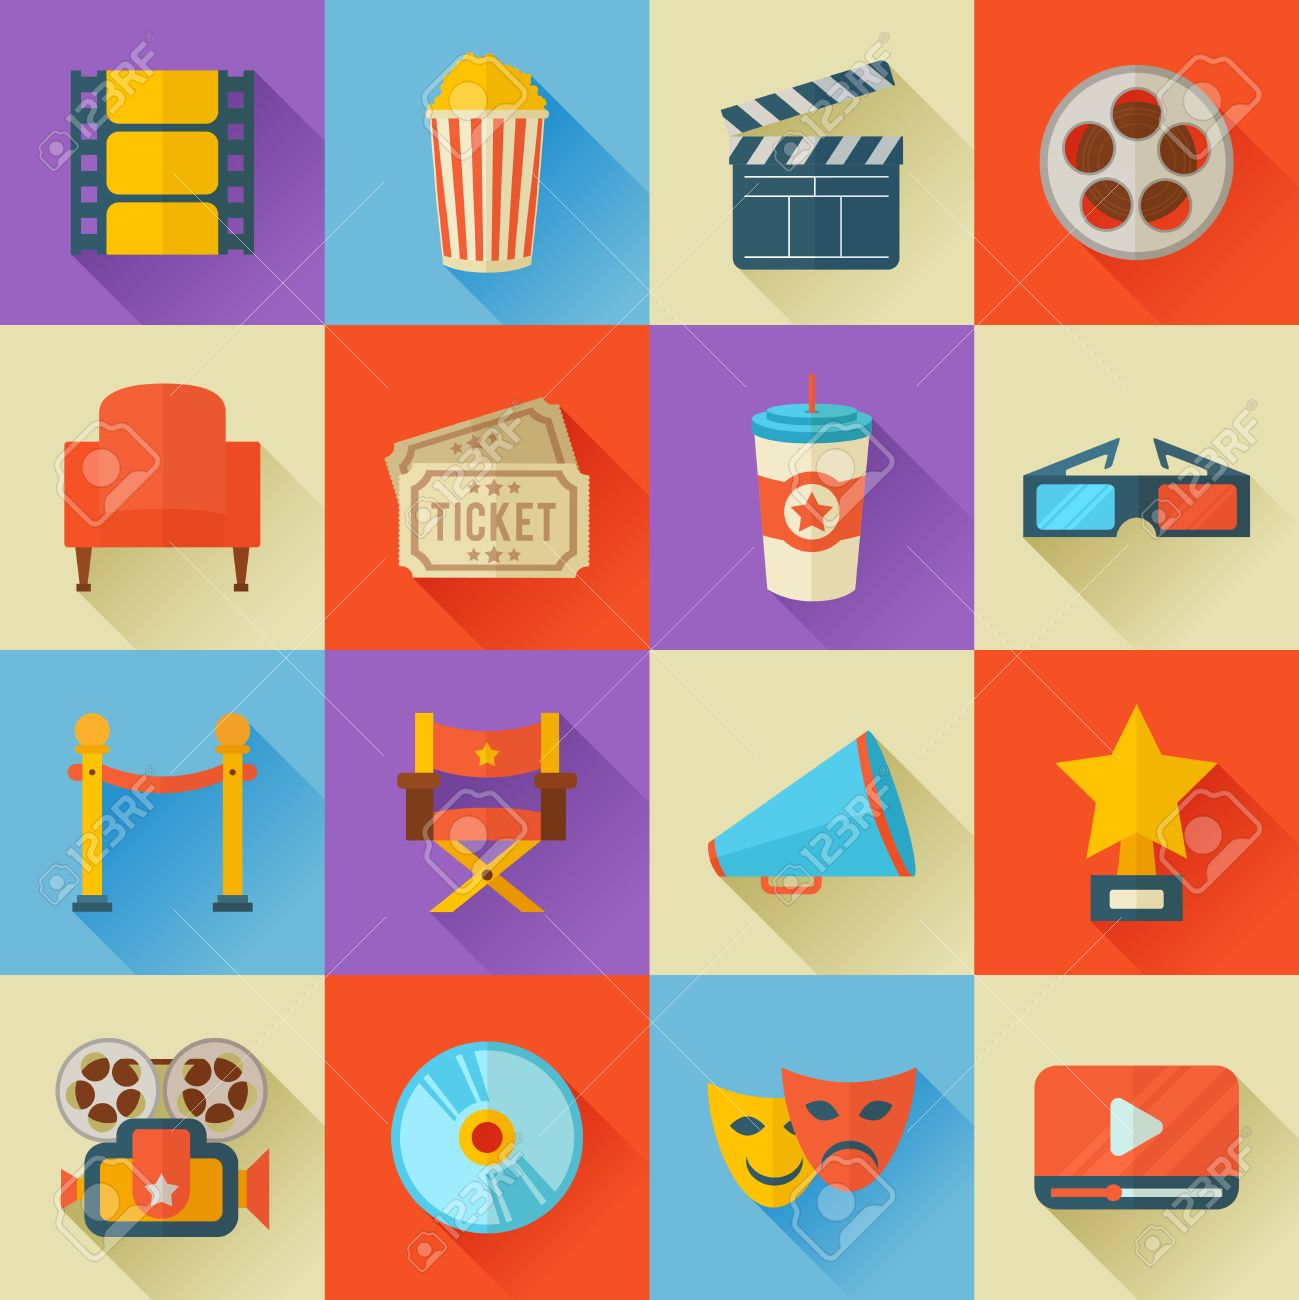 A detailed set of flat style cinema icons for web and design with movie symbols, 3D glasses, film reel, popcorn, tickets, web media - 44651206